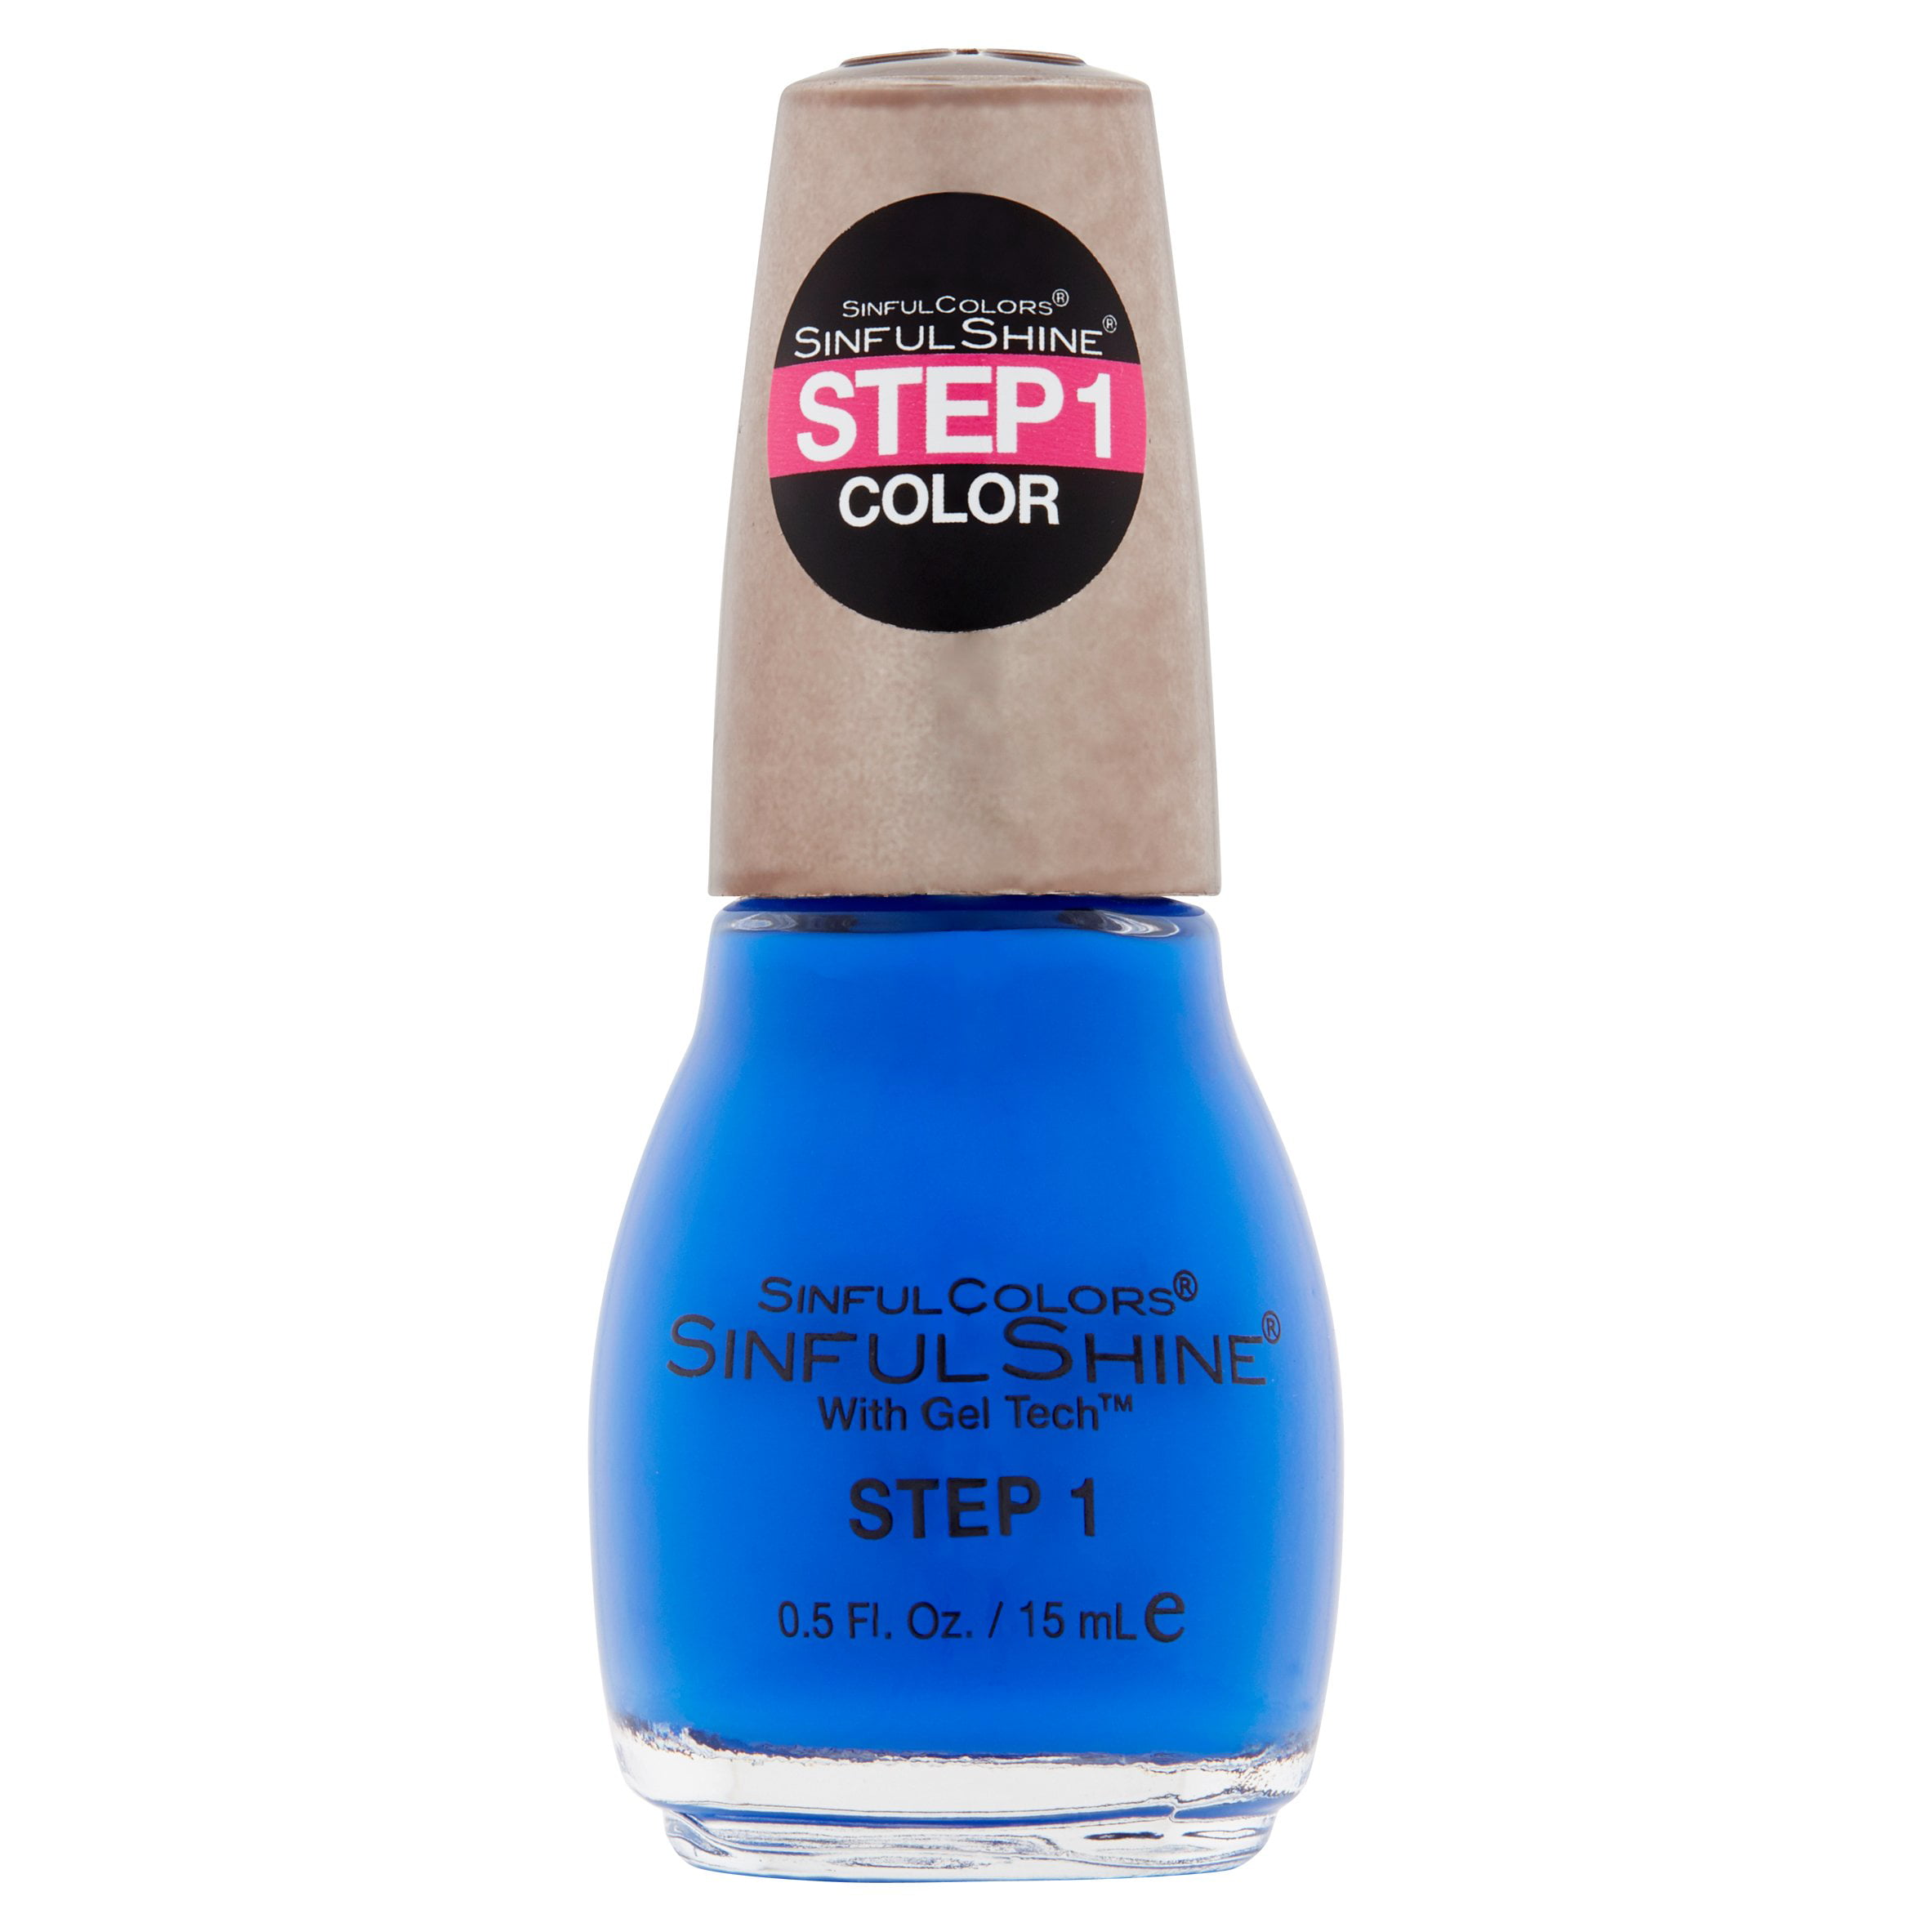 SinfulColors SinfulShine Step 1 Color Nail Color, Most Sinful, 0.5 ...